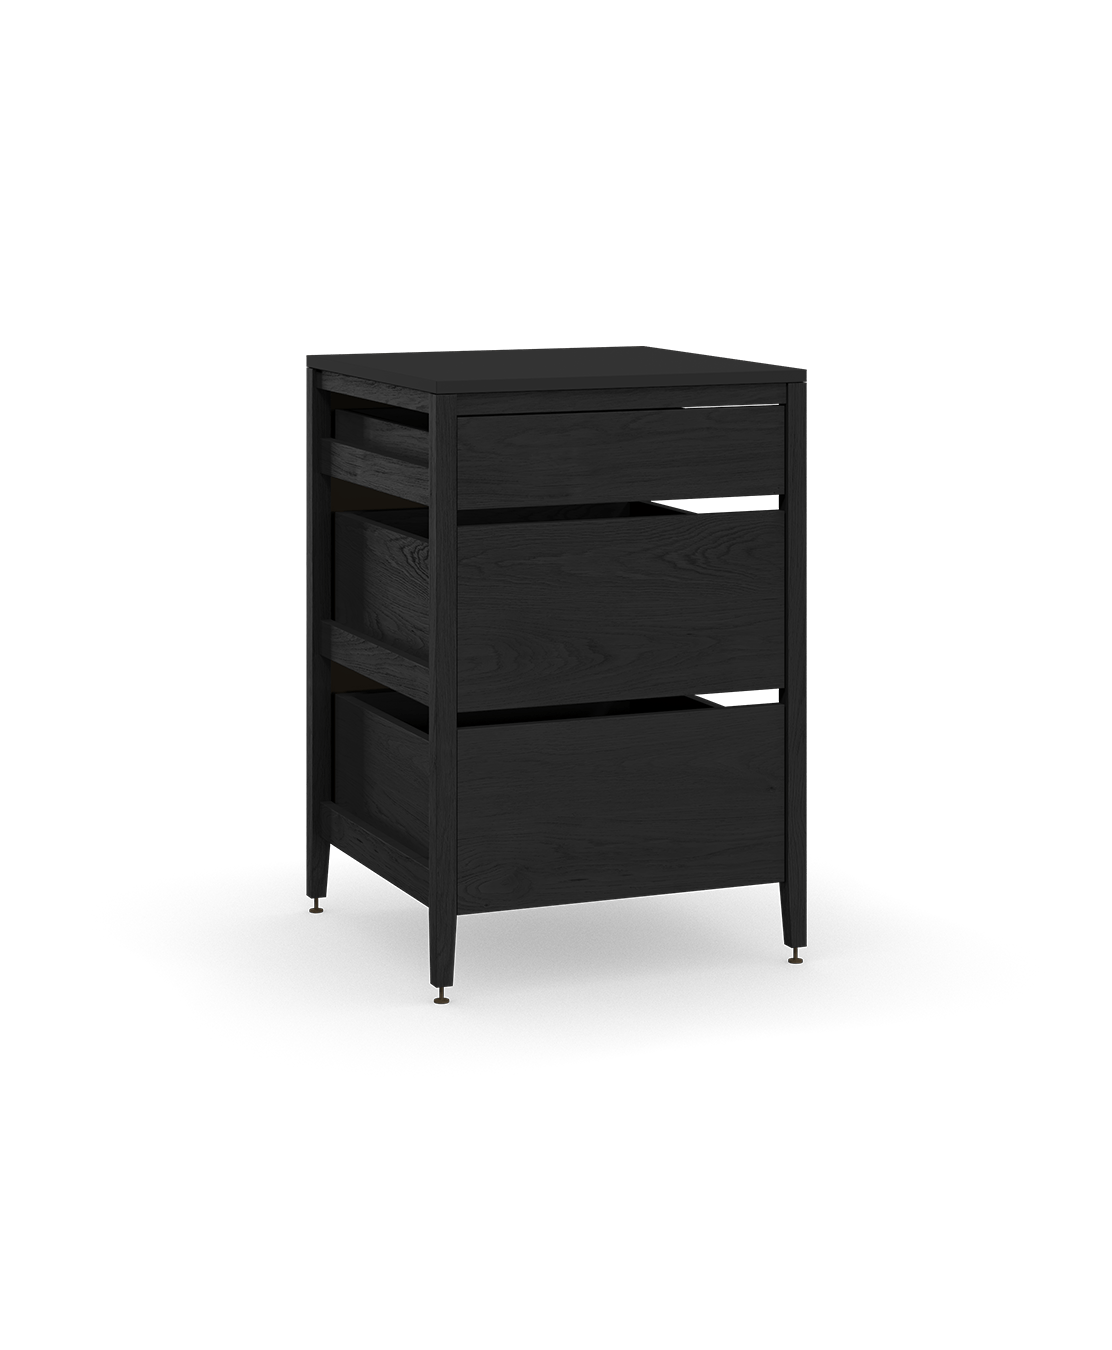 coquo radix midnight black stained oak solid wood modular 3 drawers base kitchen cabinet 24 inch C1-C-24TB-3001-BK